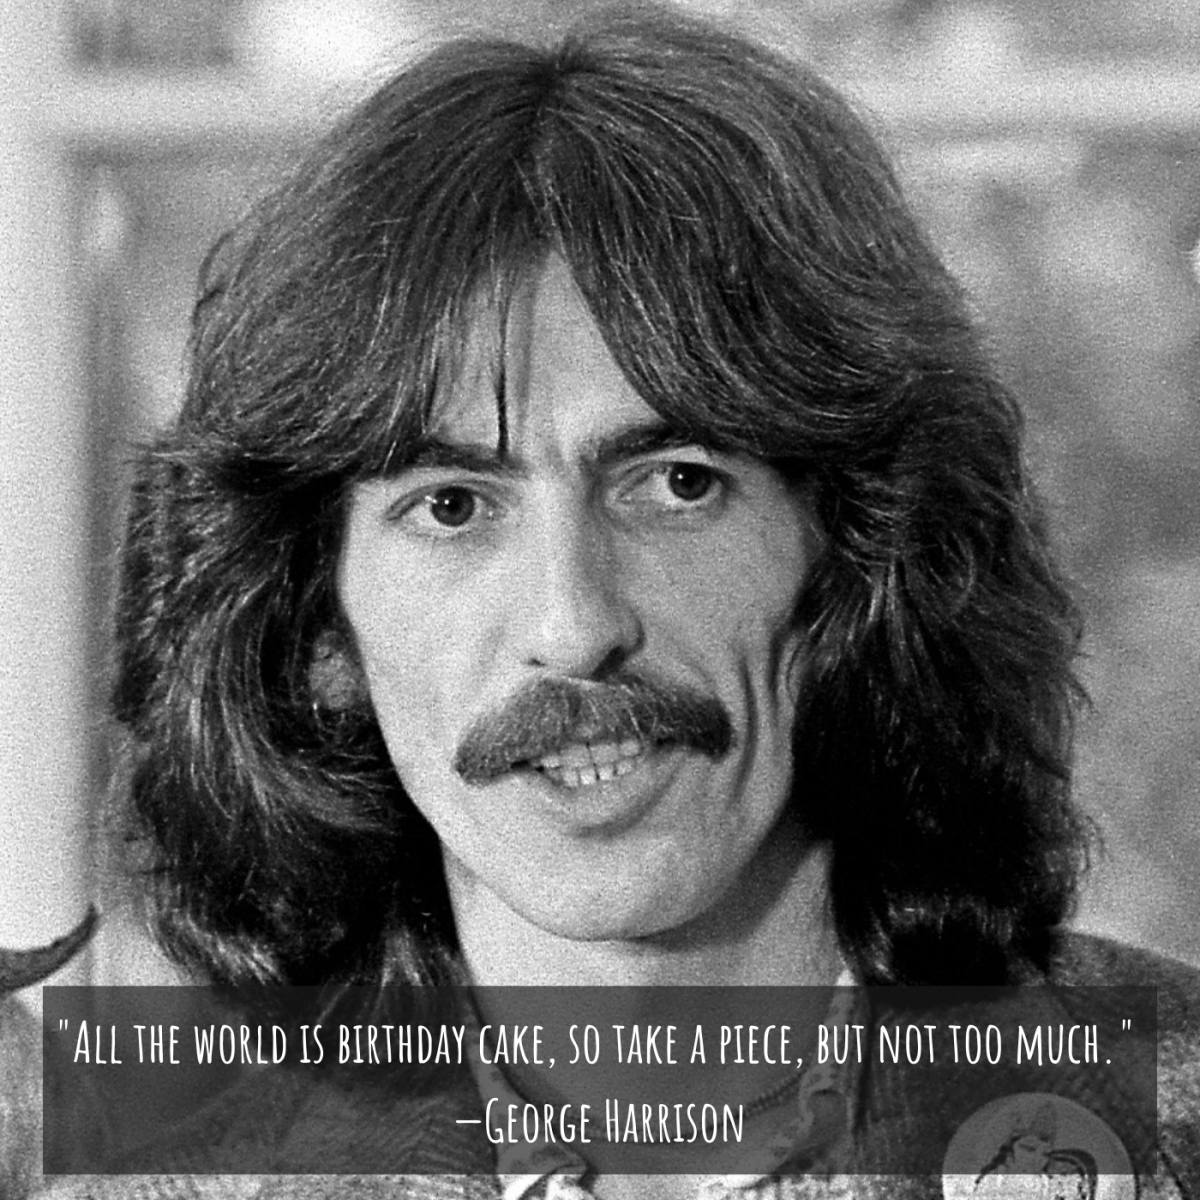 """""""All the world is birthday cake, so take a piece, but not too much."""" —George Harrison"""